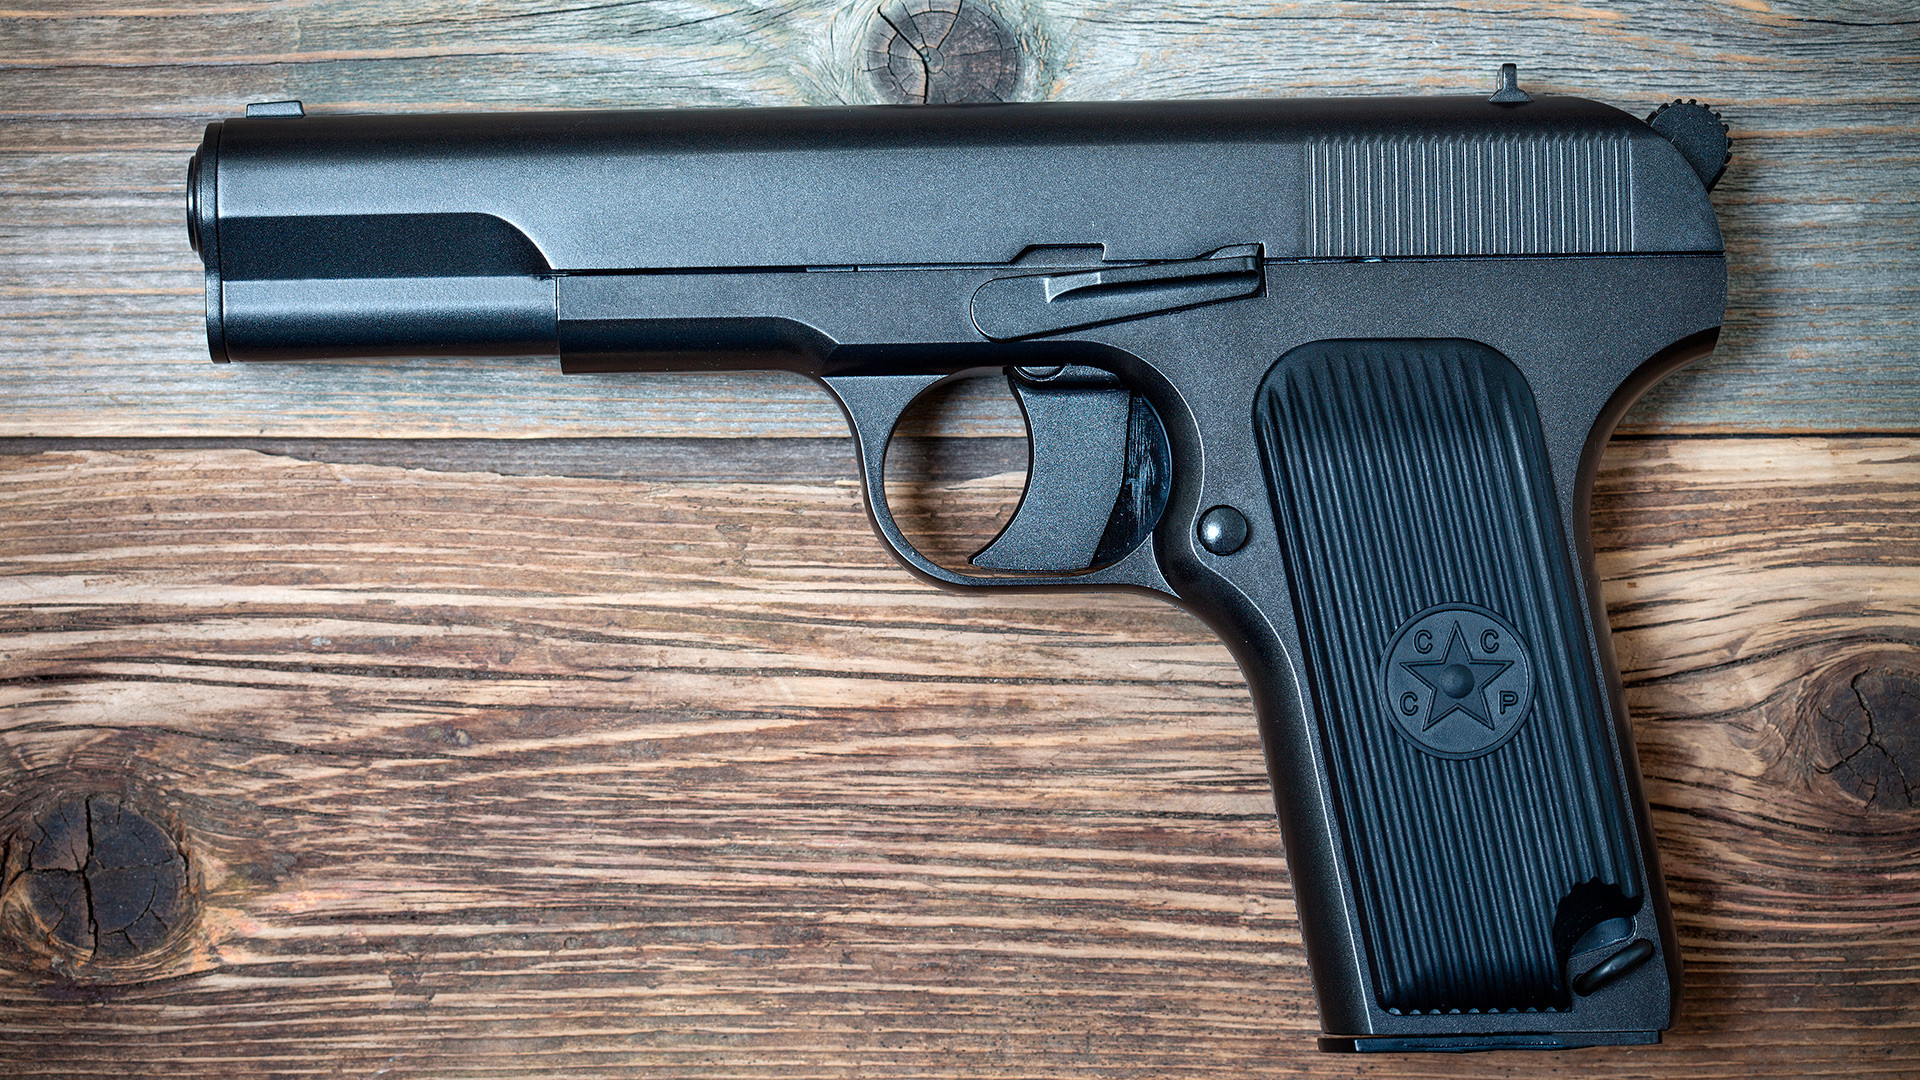 Russia S Top Pistols From The 20th Century Russia Beyond Images, Photos, Reviews